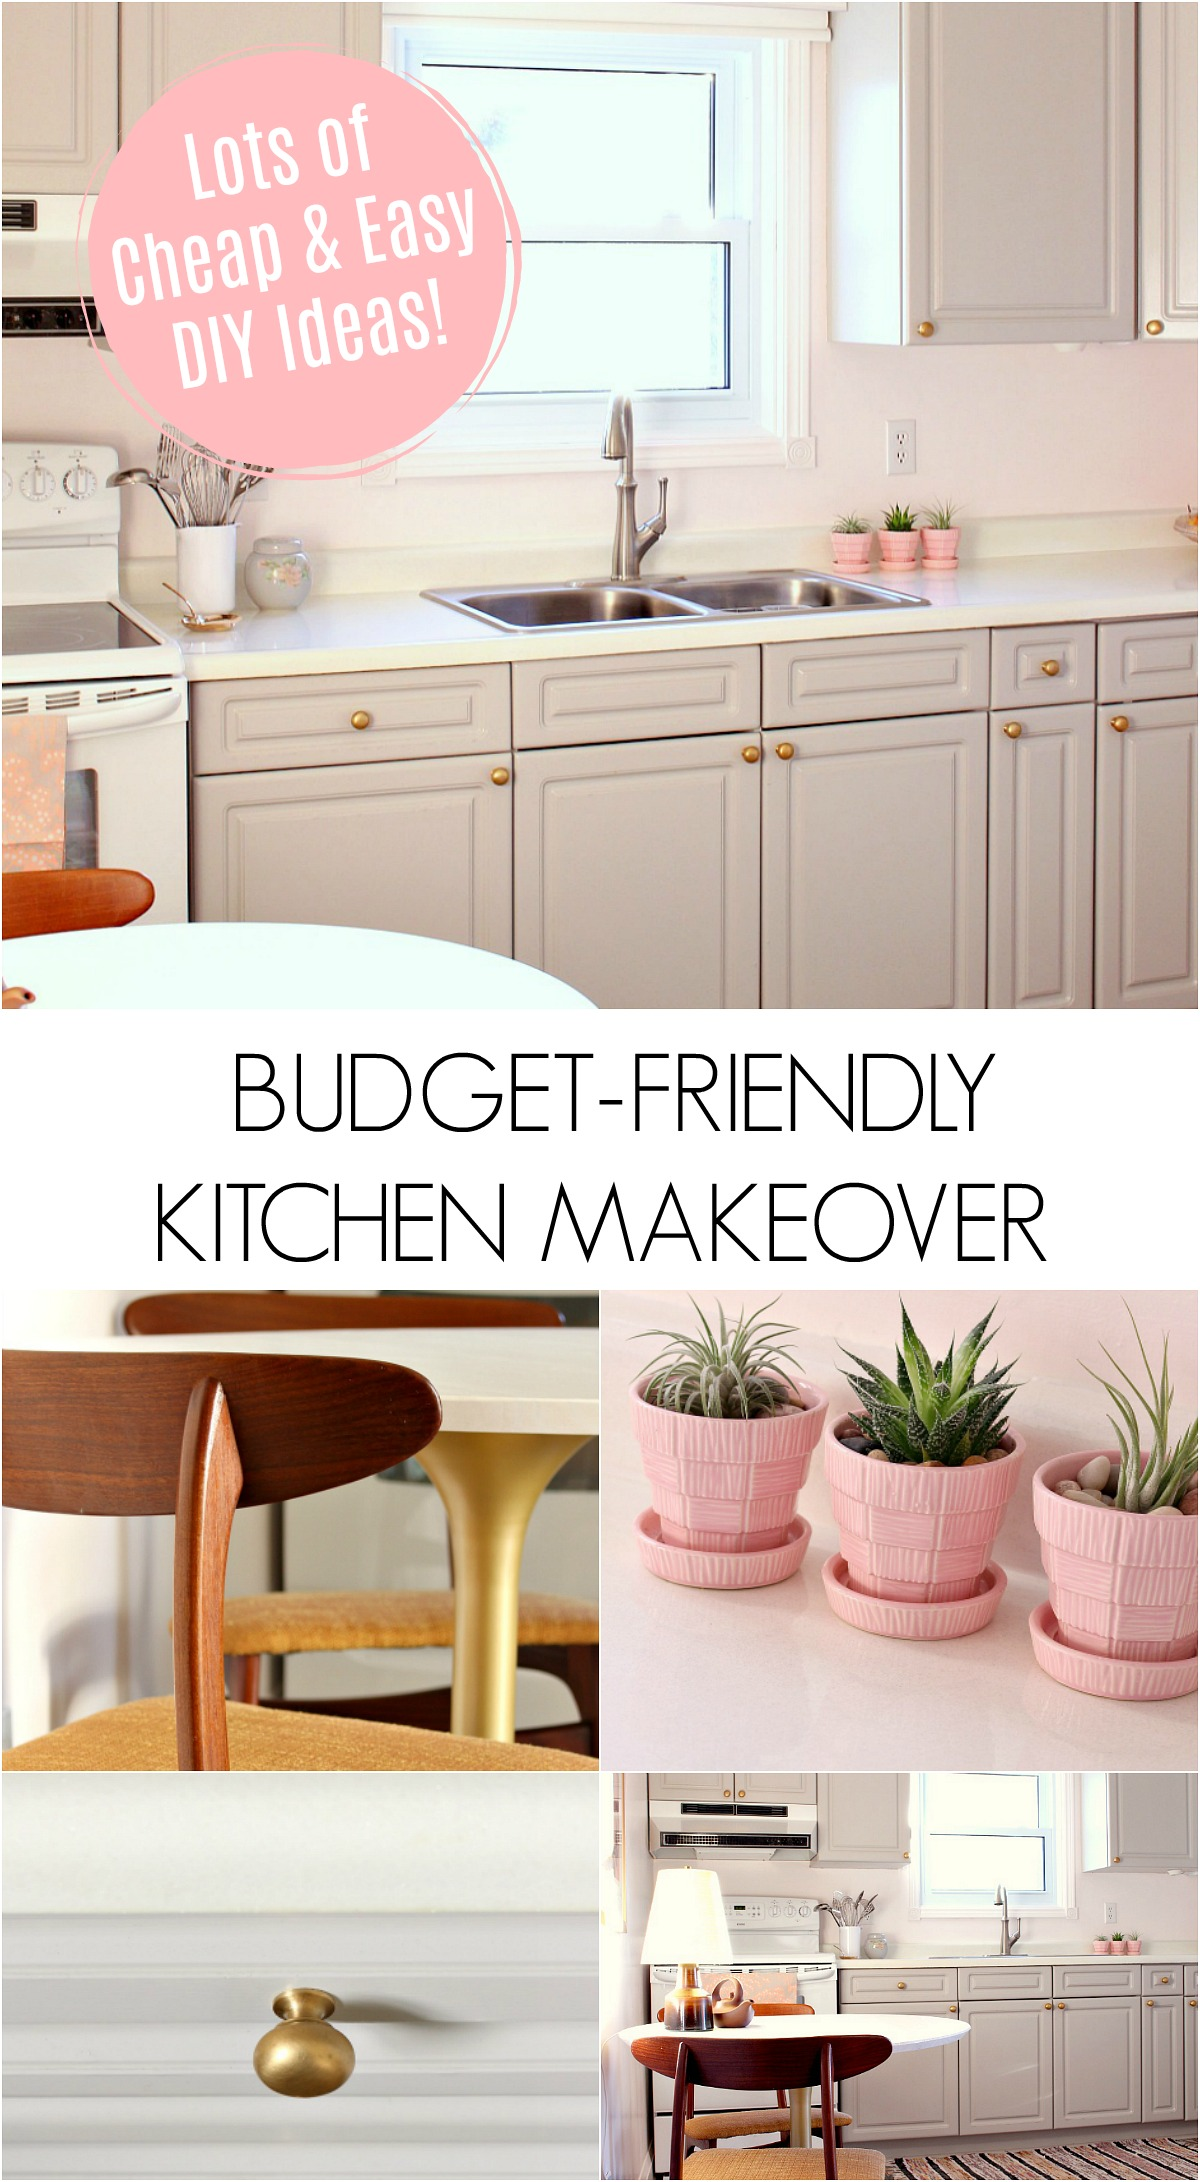 Budget-Friendly Kitchen Makeover, Before and After Photos. Lots of DIY Ideas to Make Over Your Kitchen for Little Money. #budgetdecor #kitchenmakeover #cheapdiyideas